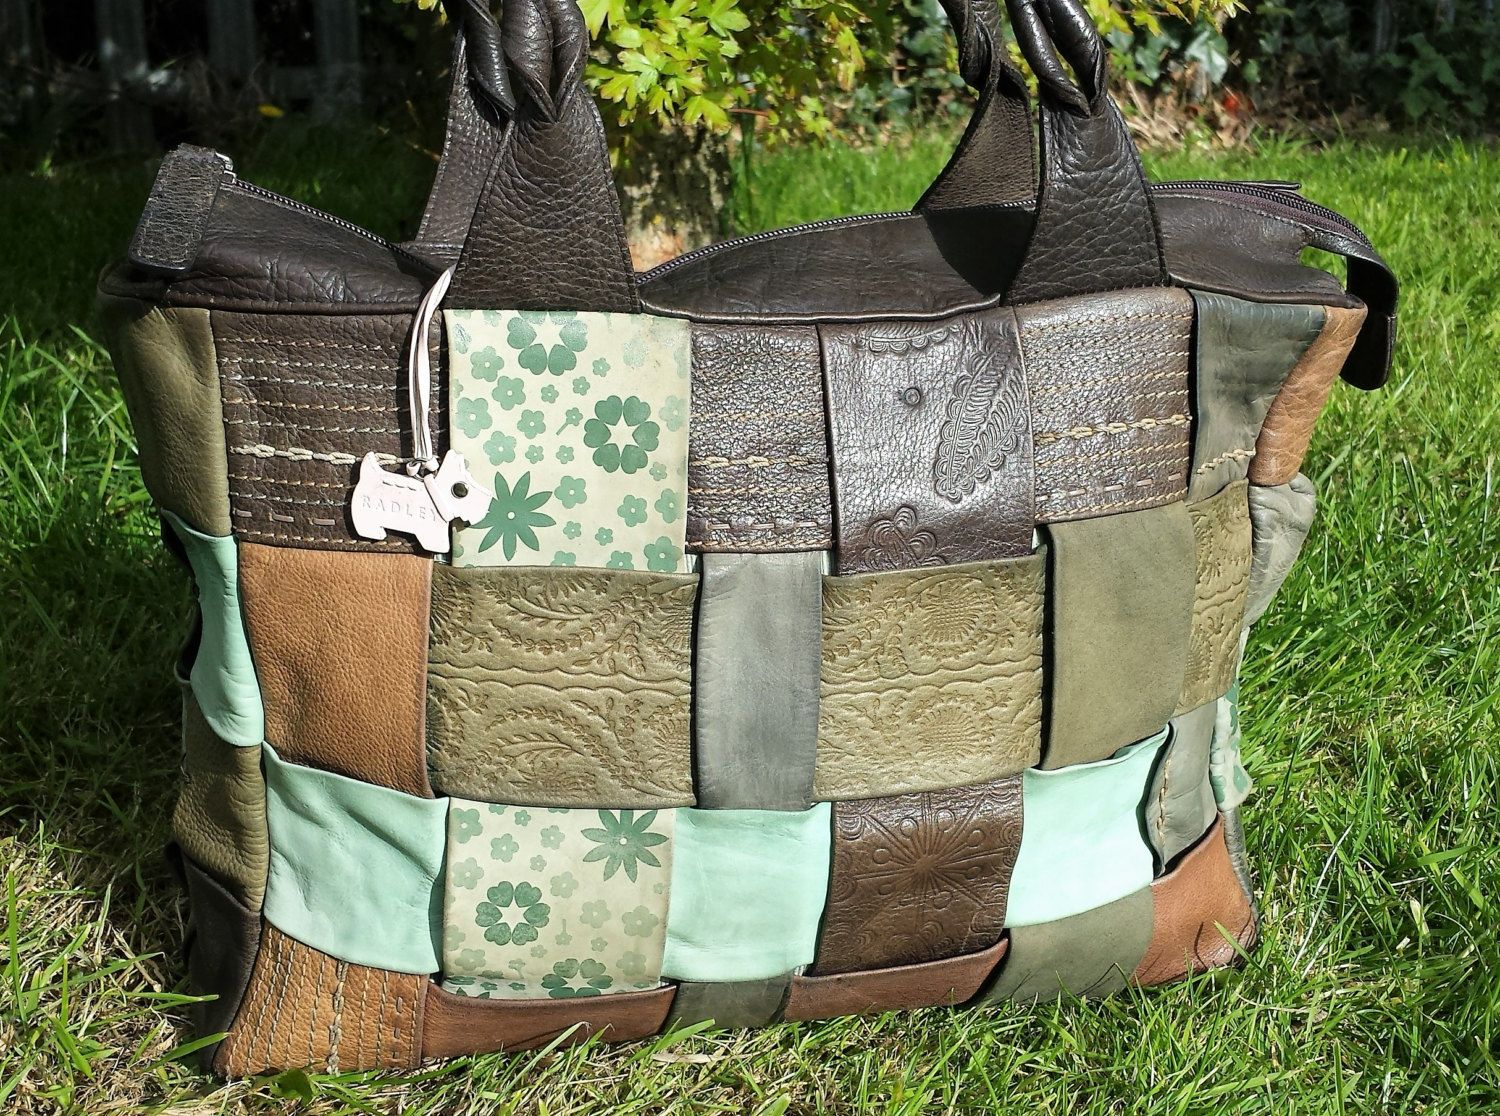 Large vintage Radley Tote shoulder bag, patchwork leather, brown leather, Radley bag with dog tag, Retro hippy chic leather tote bag purse by LuckSy on Etsy